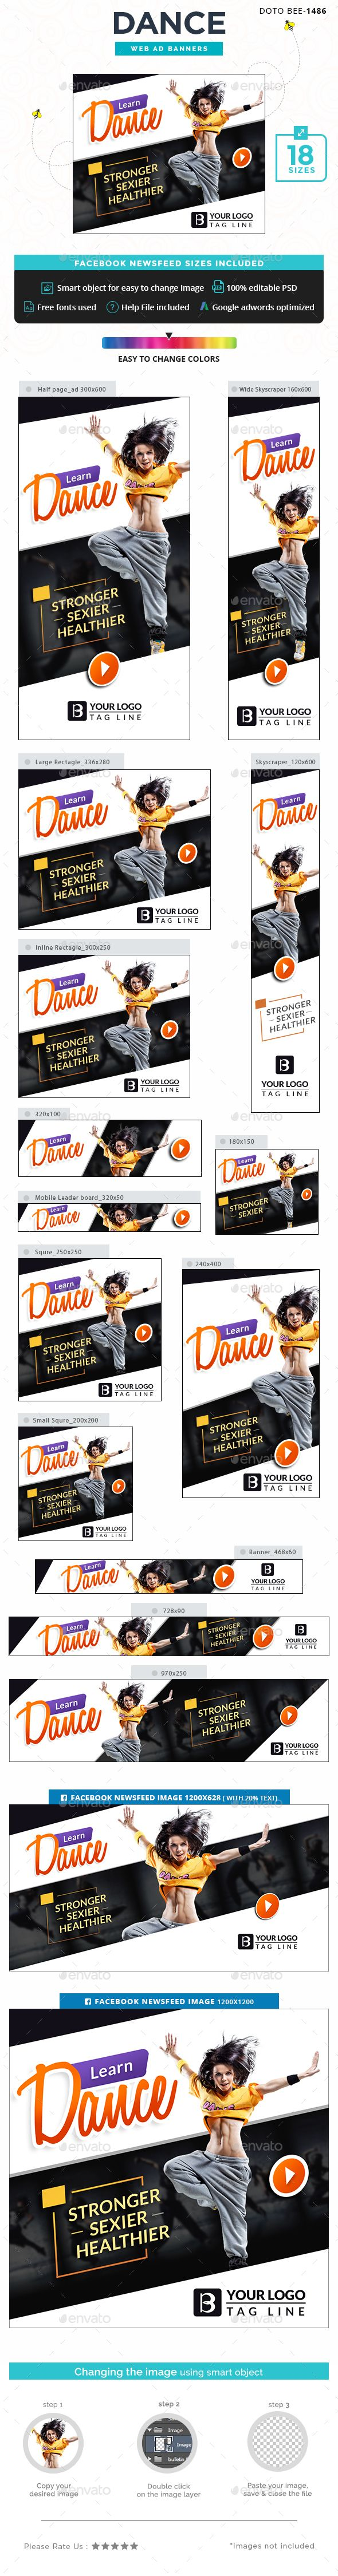 Dance Web Banners Template PSD. Download here: http://graphicriver.net/item/dance-banners/16618138?ref=ksioks